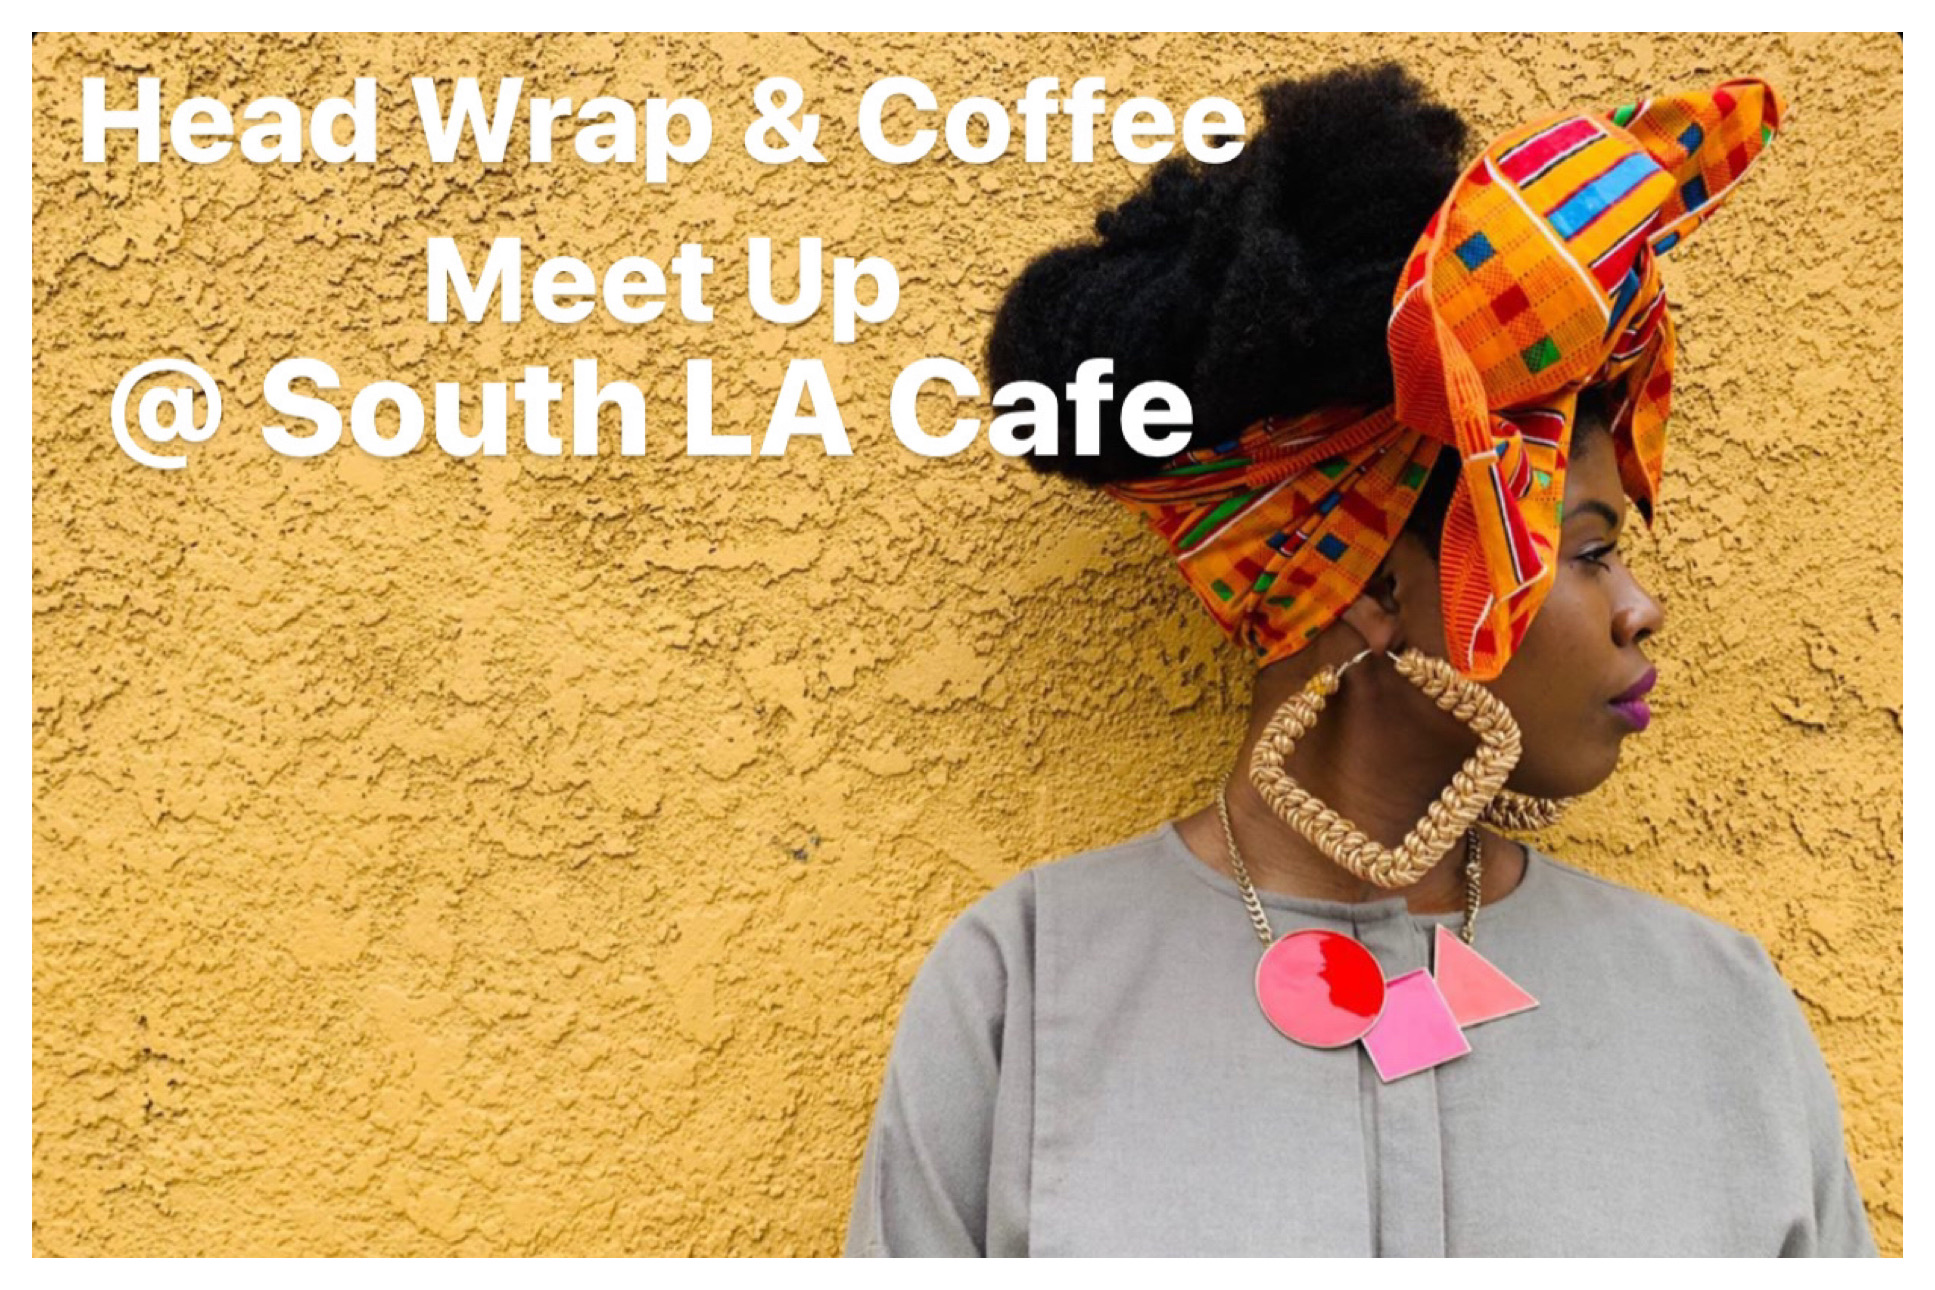 Los Angeles Head Wrap & Coffee Meet Up